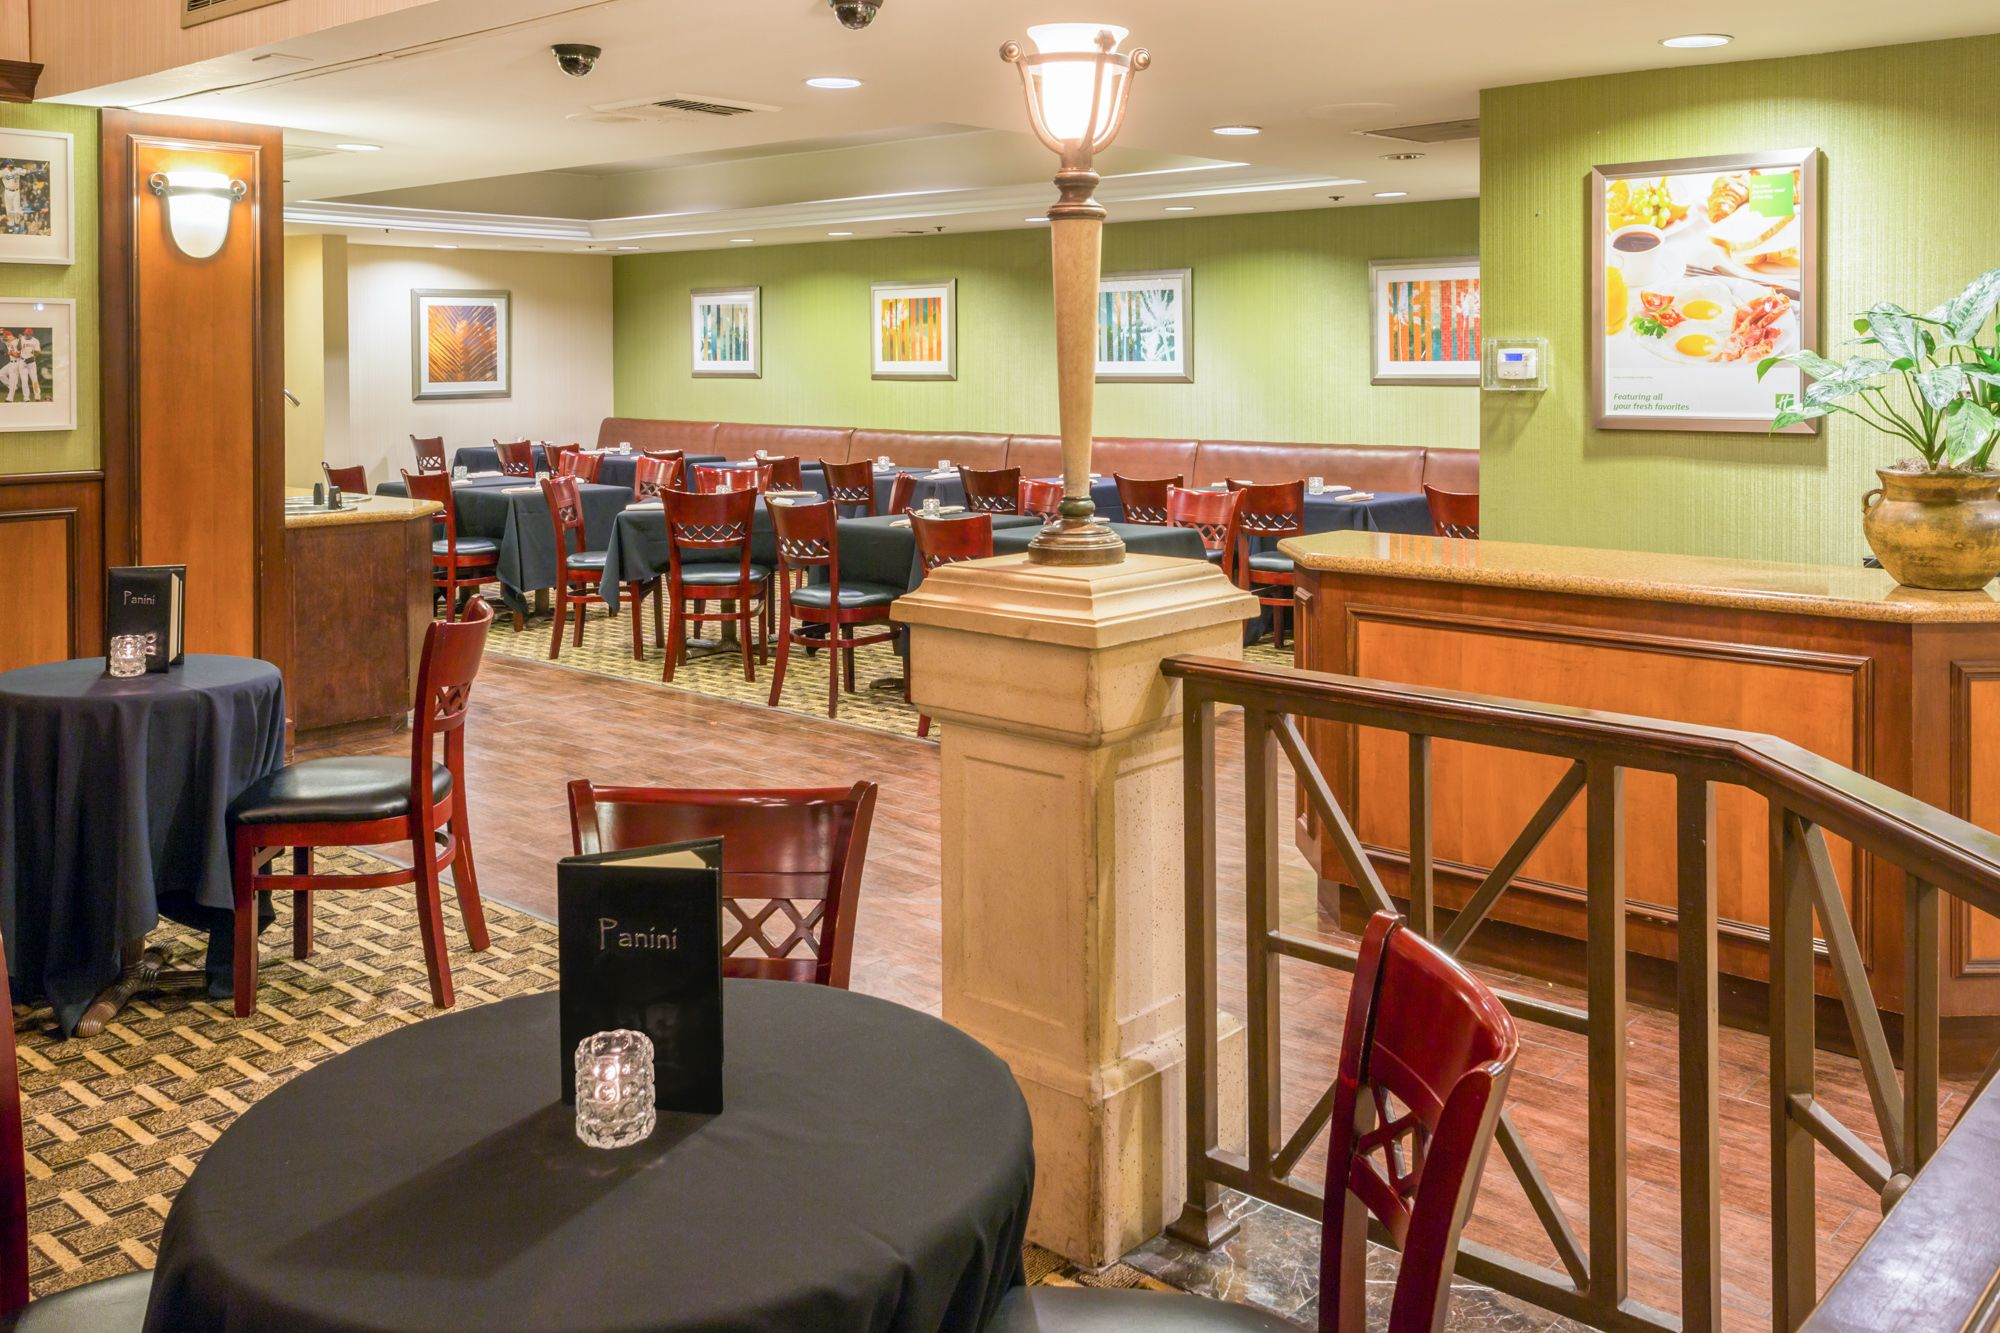 Panini Restaurant Located Inside The Holiday Inn Orange County Airport   Santa Ana! A Convenient